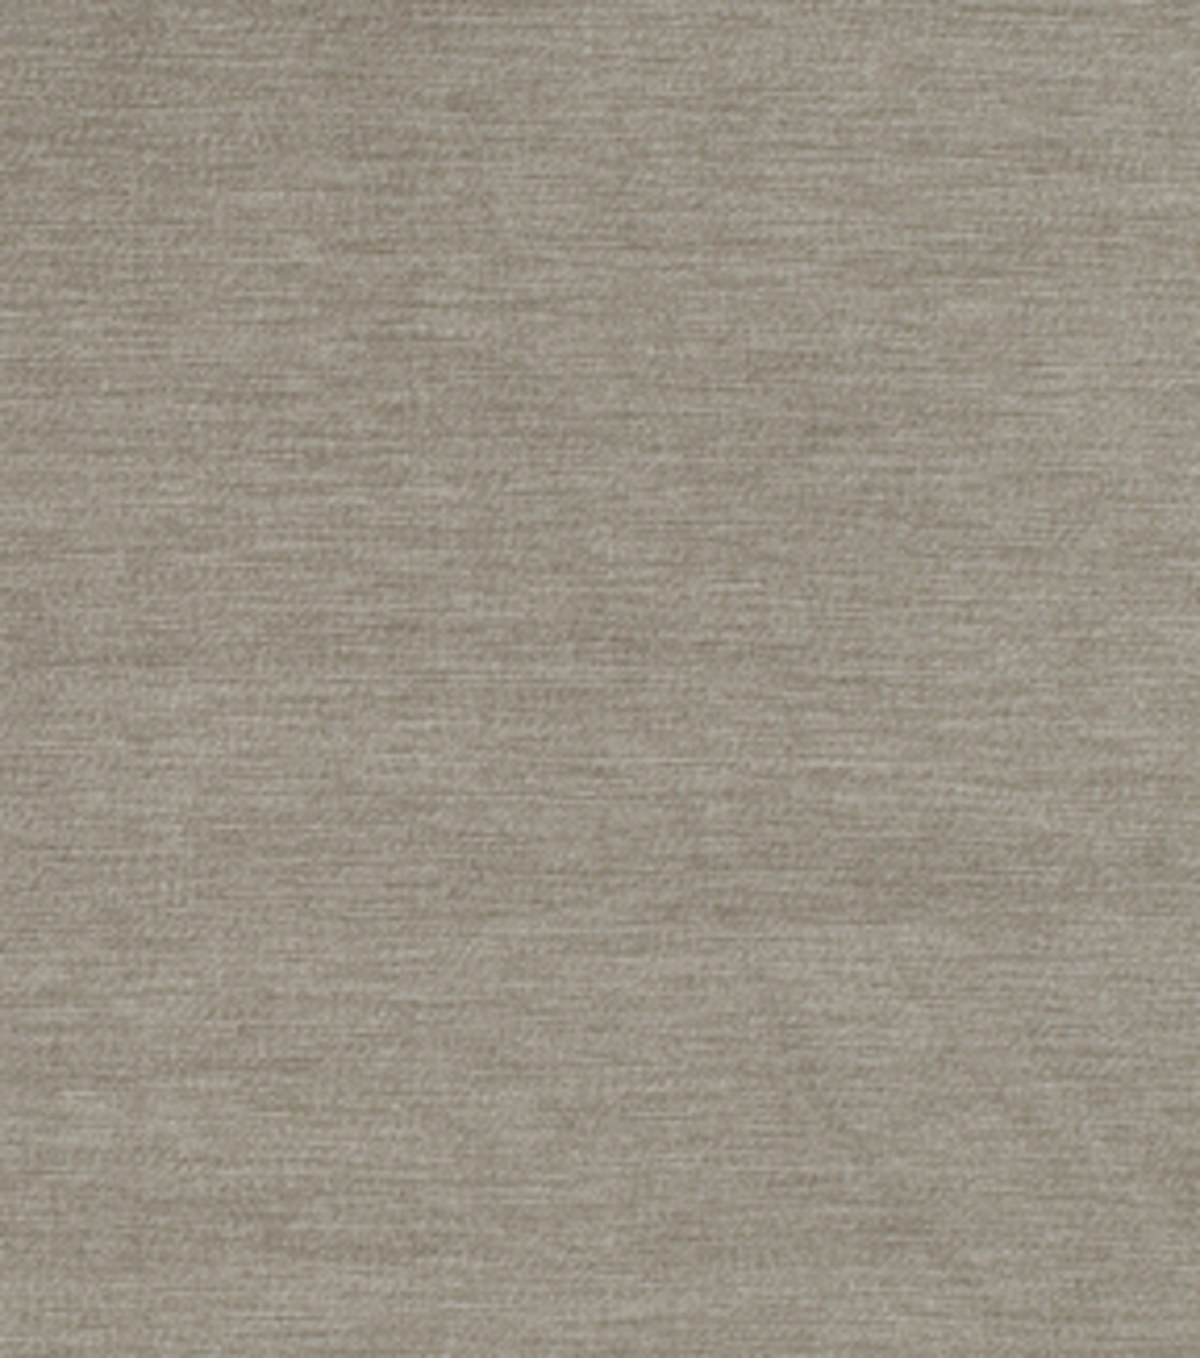 "Home Decor 8""x8"" Fabric Swatch-Eaton Square Moonbeam Steeple Gray"